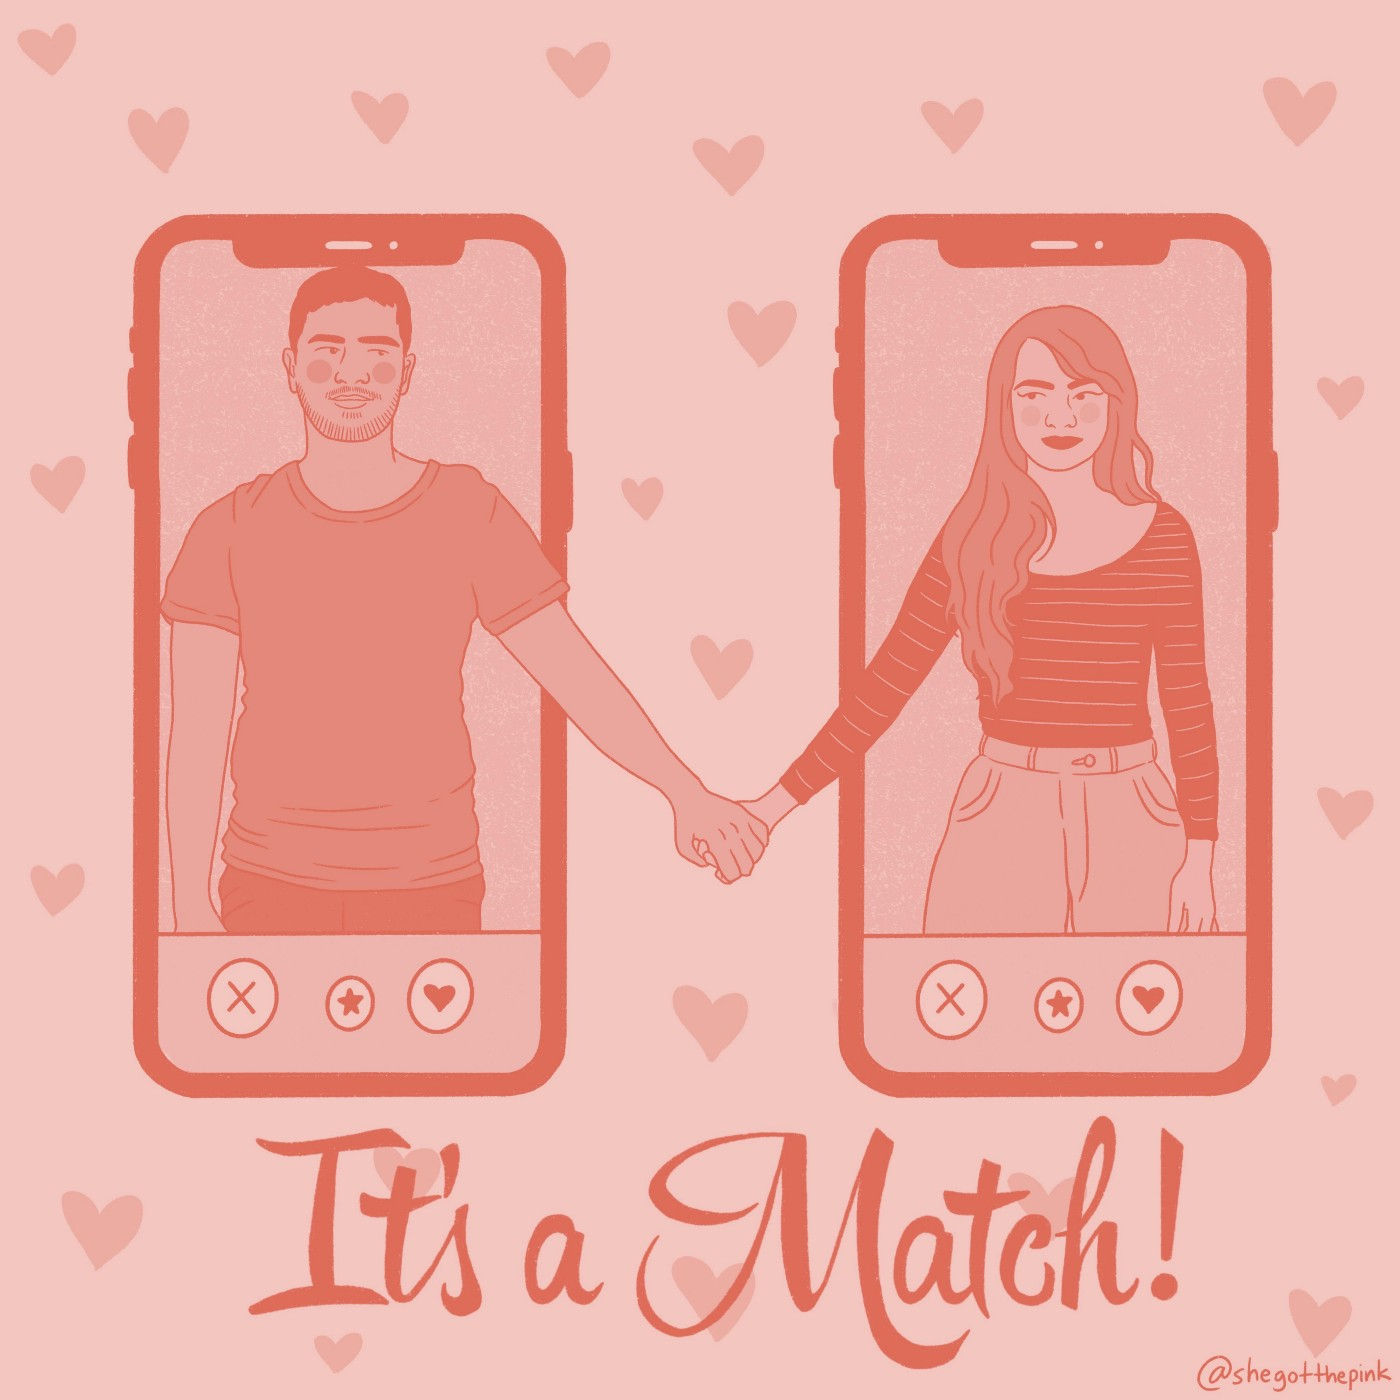 2 cell phones held next to each other with a person on each screen. The people are holding hands on a background of hearts.